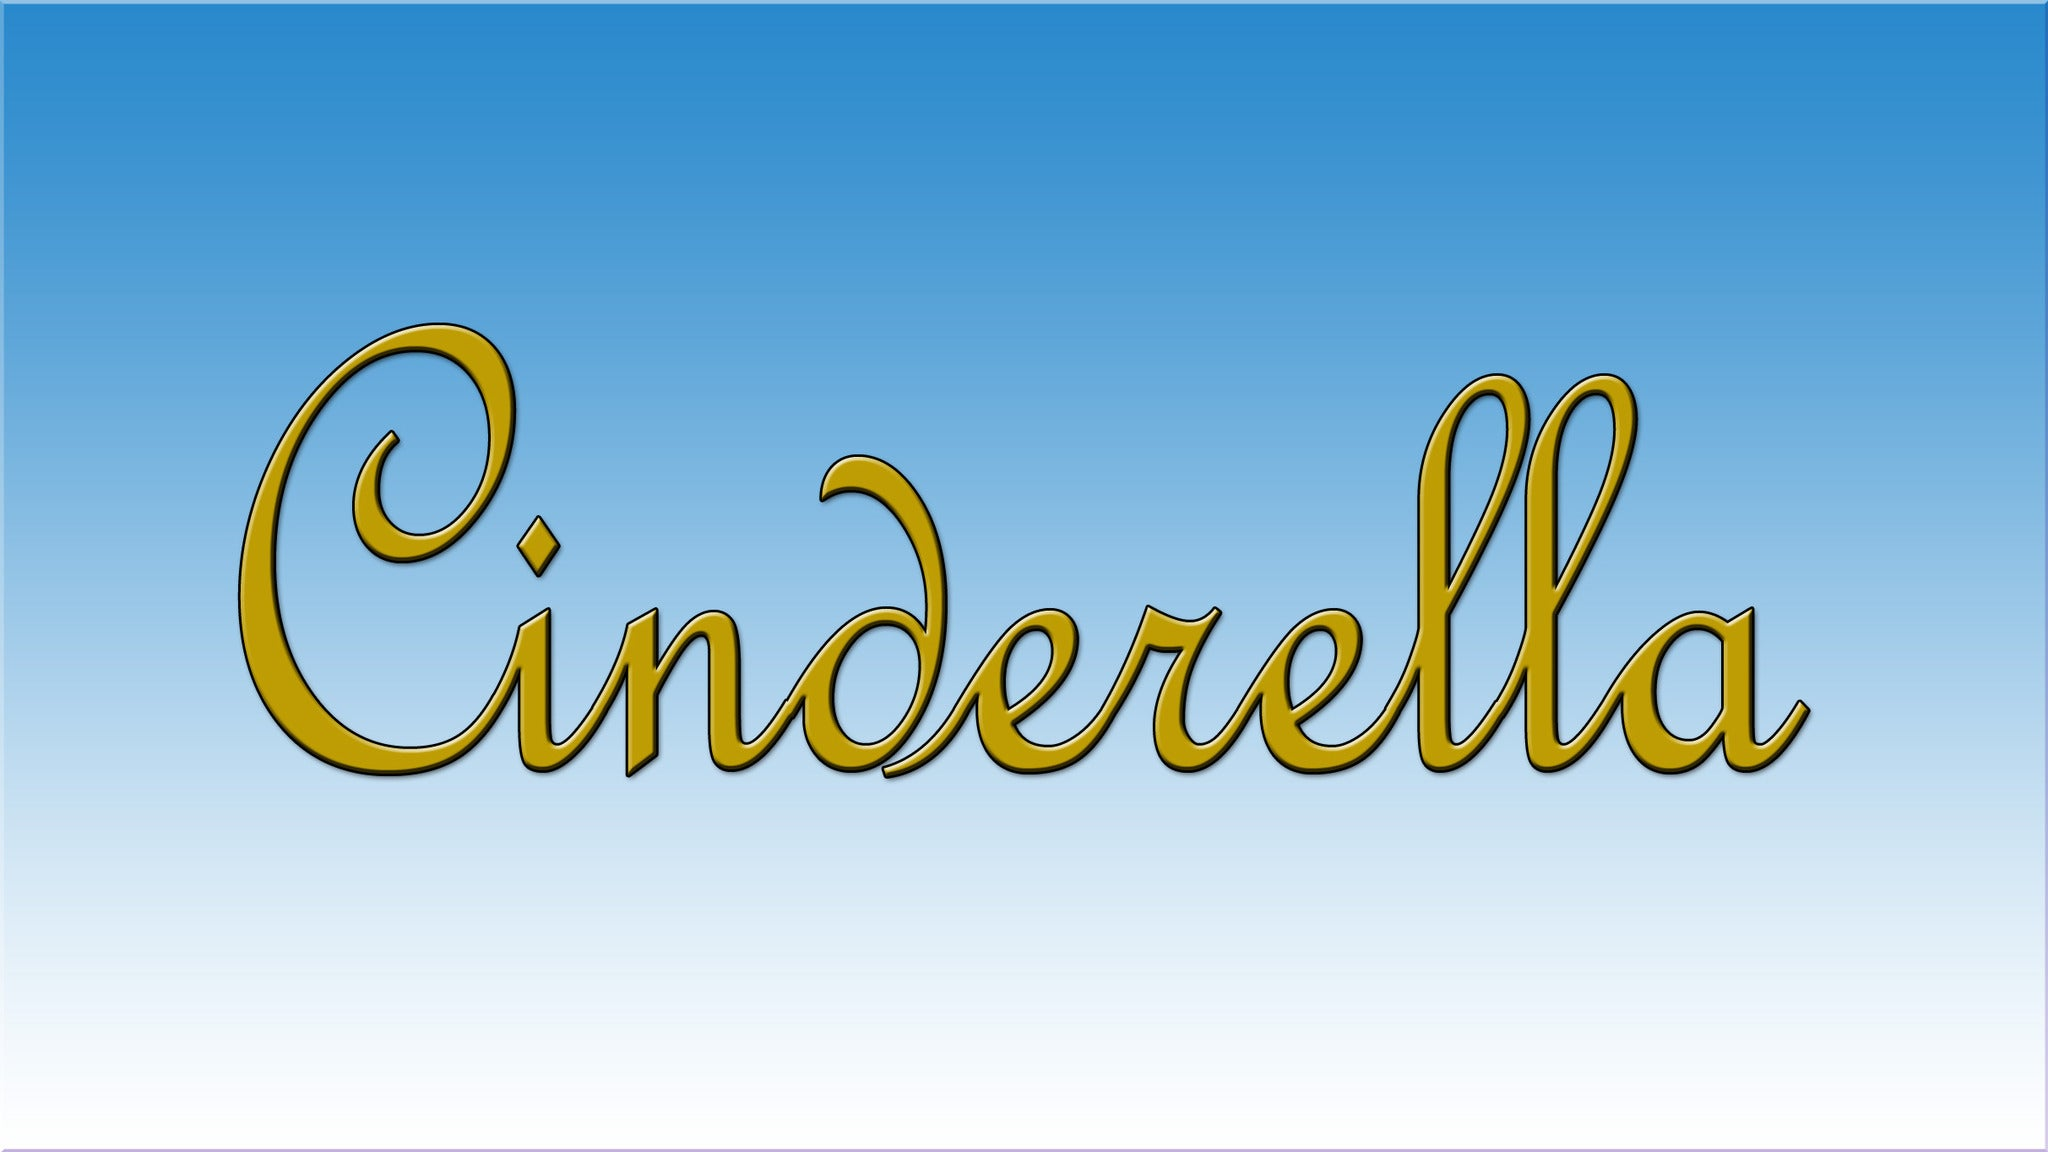 Cinderella at Baton Rouge River Center Theater